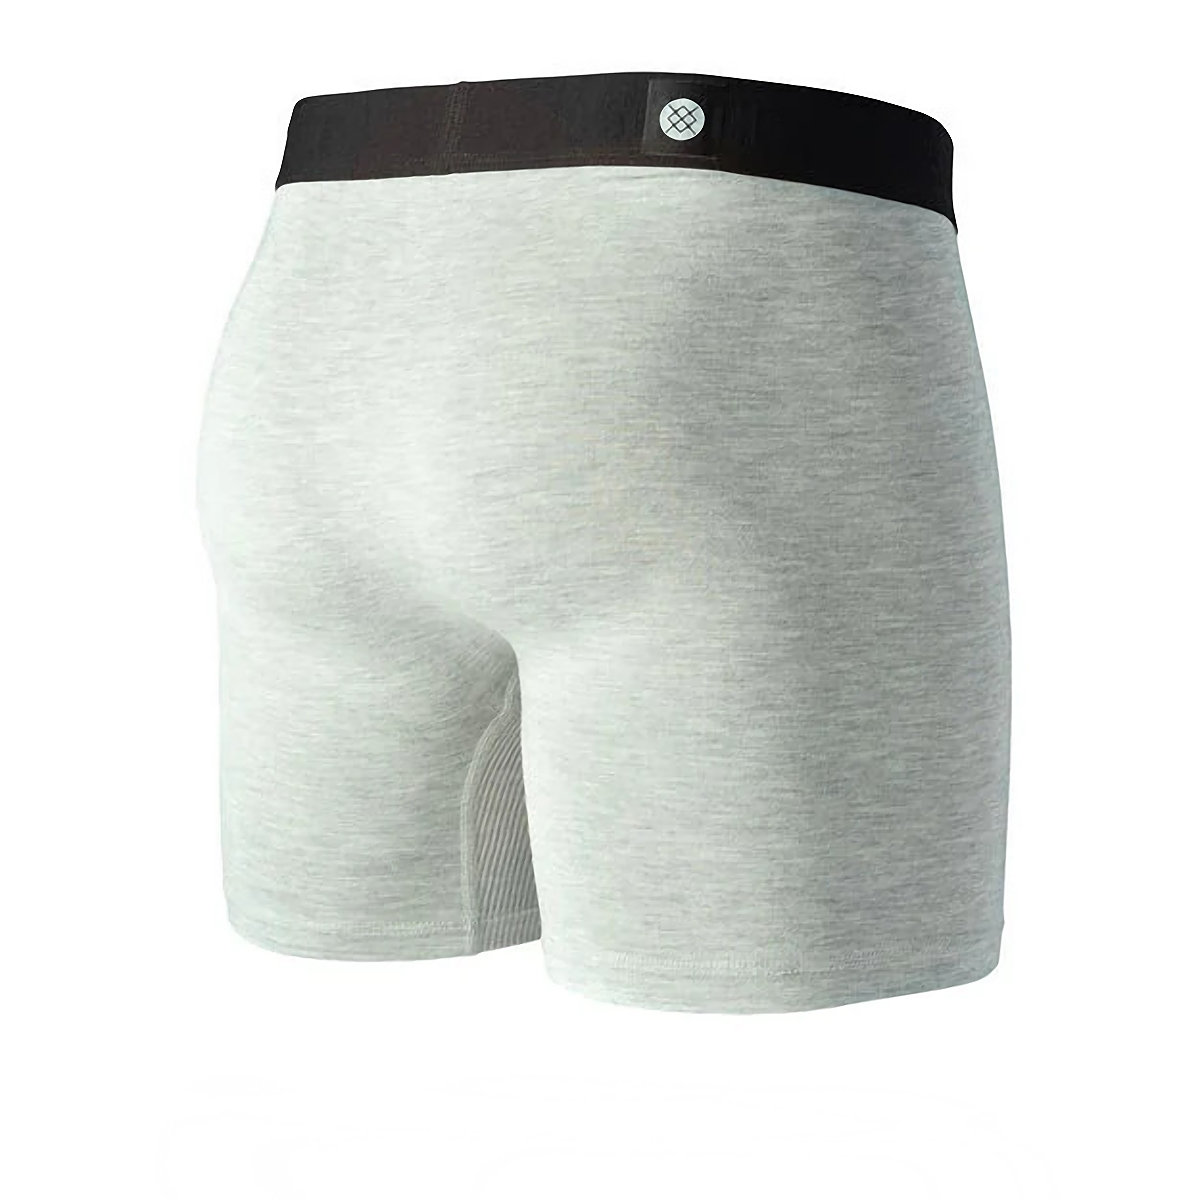 Men's Stance Staple ST 6in Boxer Briefs - Color: Heathergrey - Size: S, Heathergrey, large, image 2